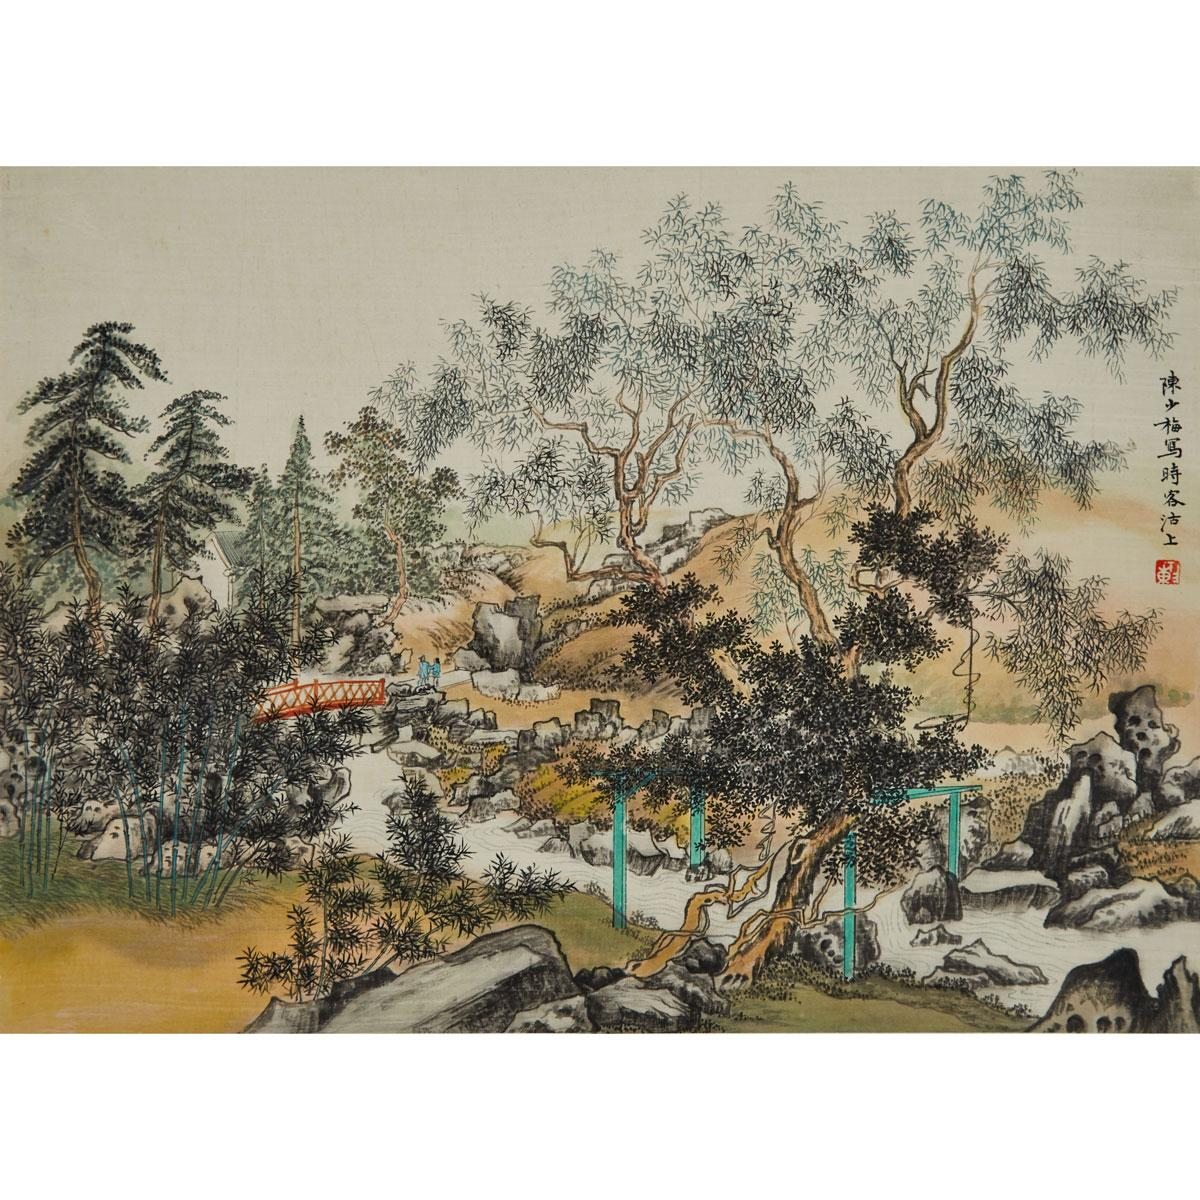 Lot 490 After Chen Shaomei 1909 1954